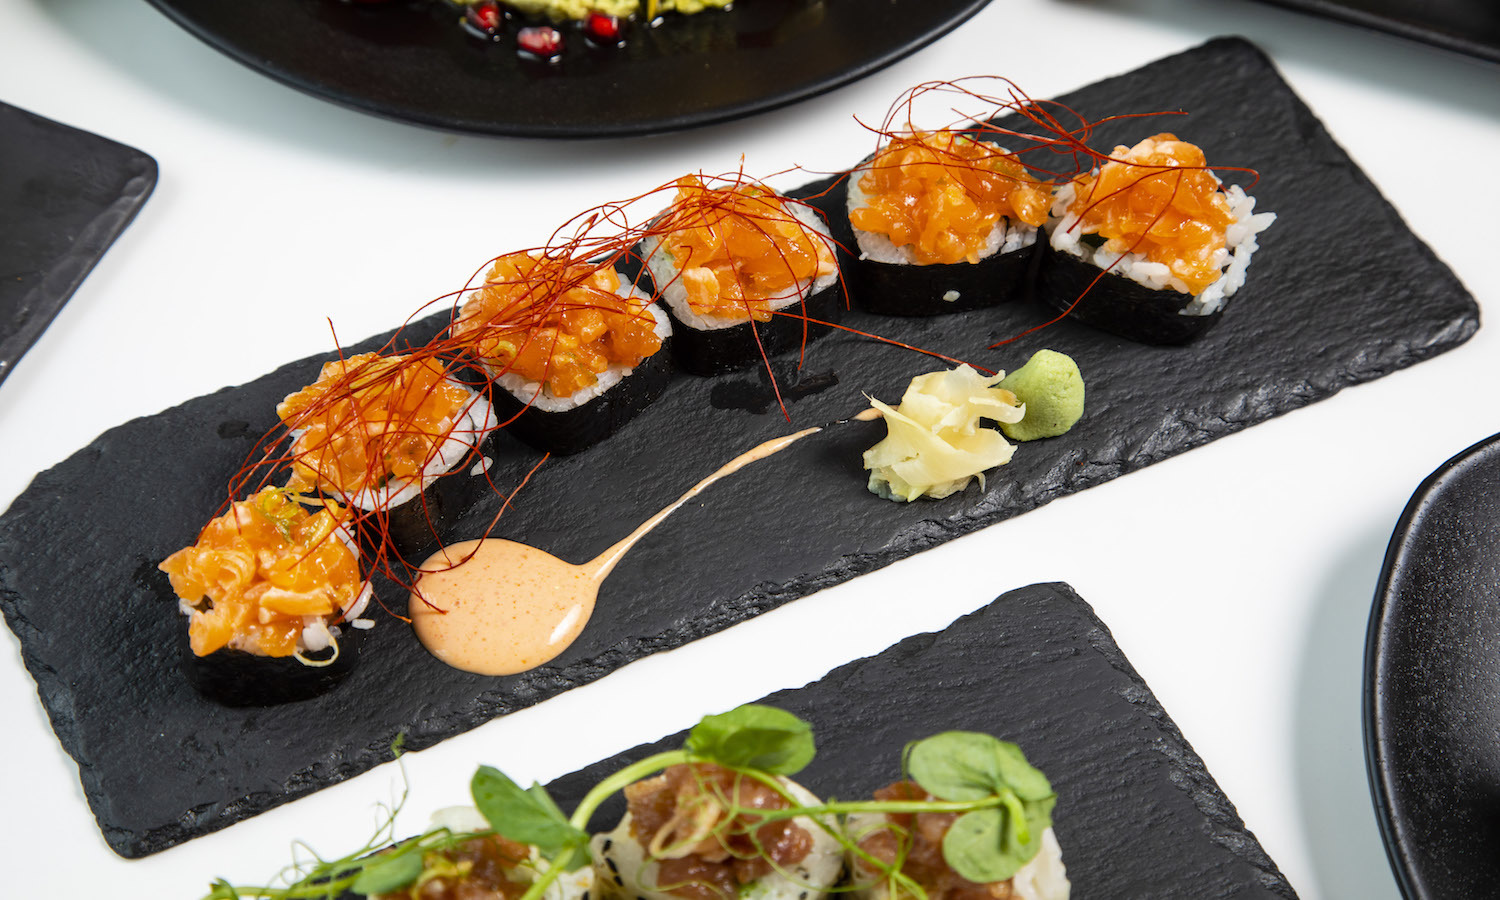 58% off a meal and drinks at Inamo Soho